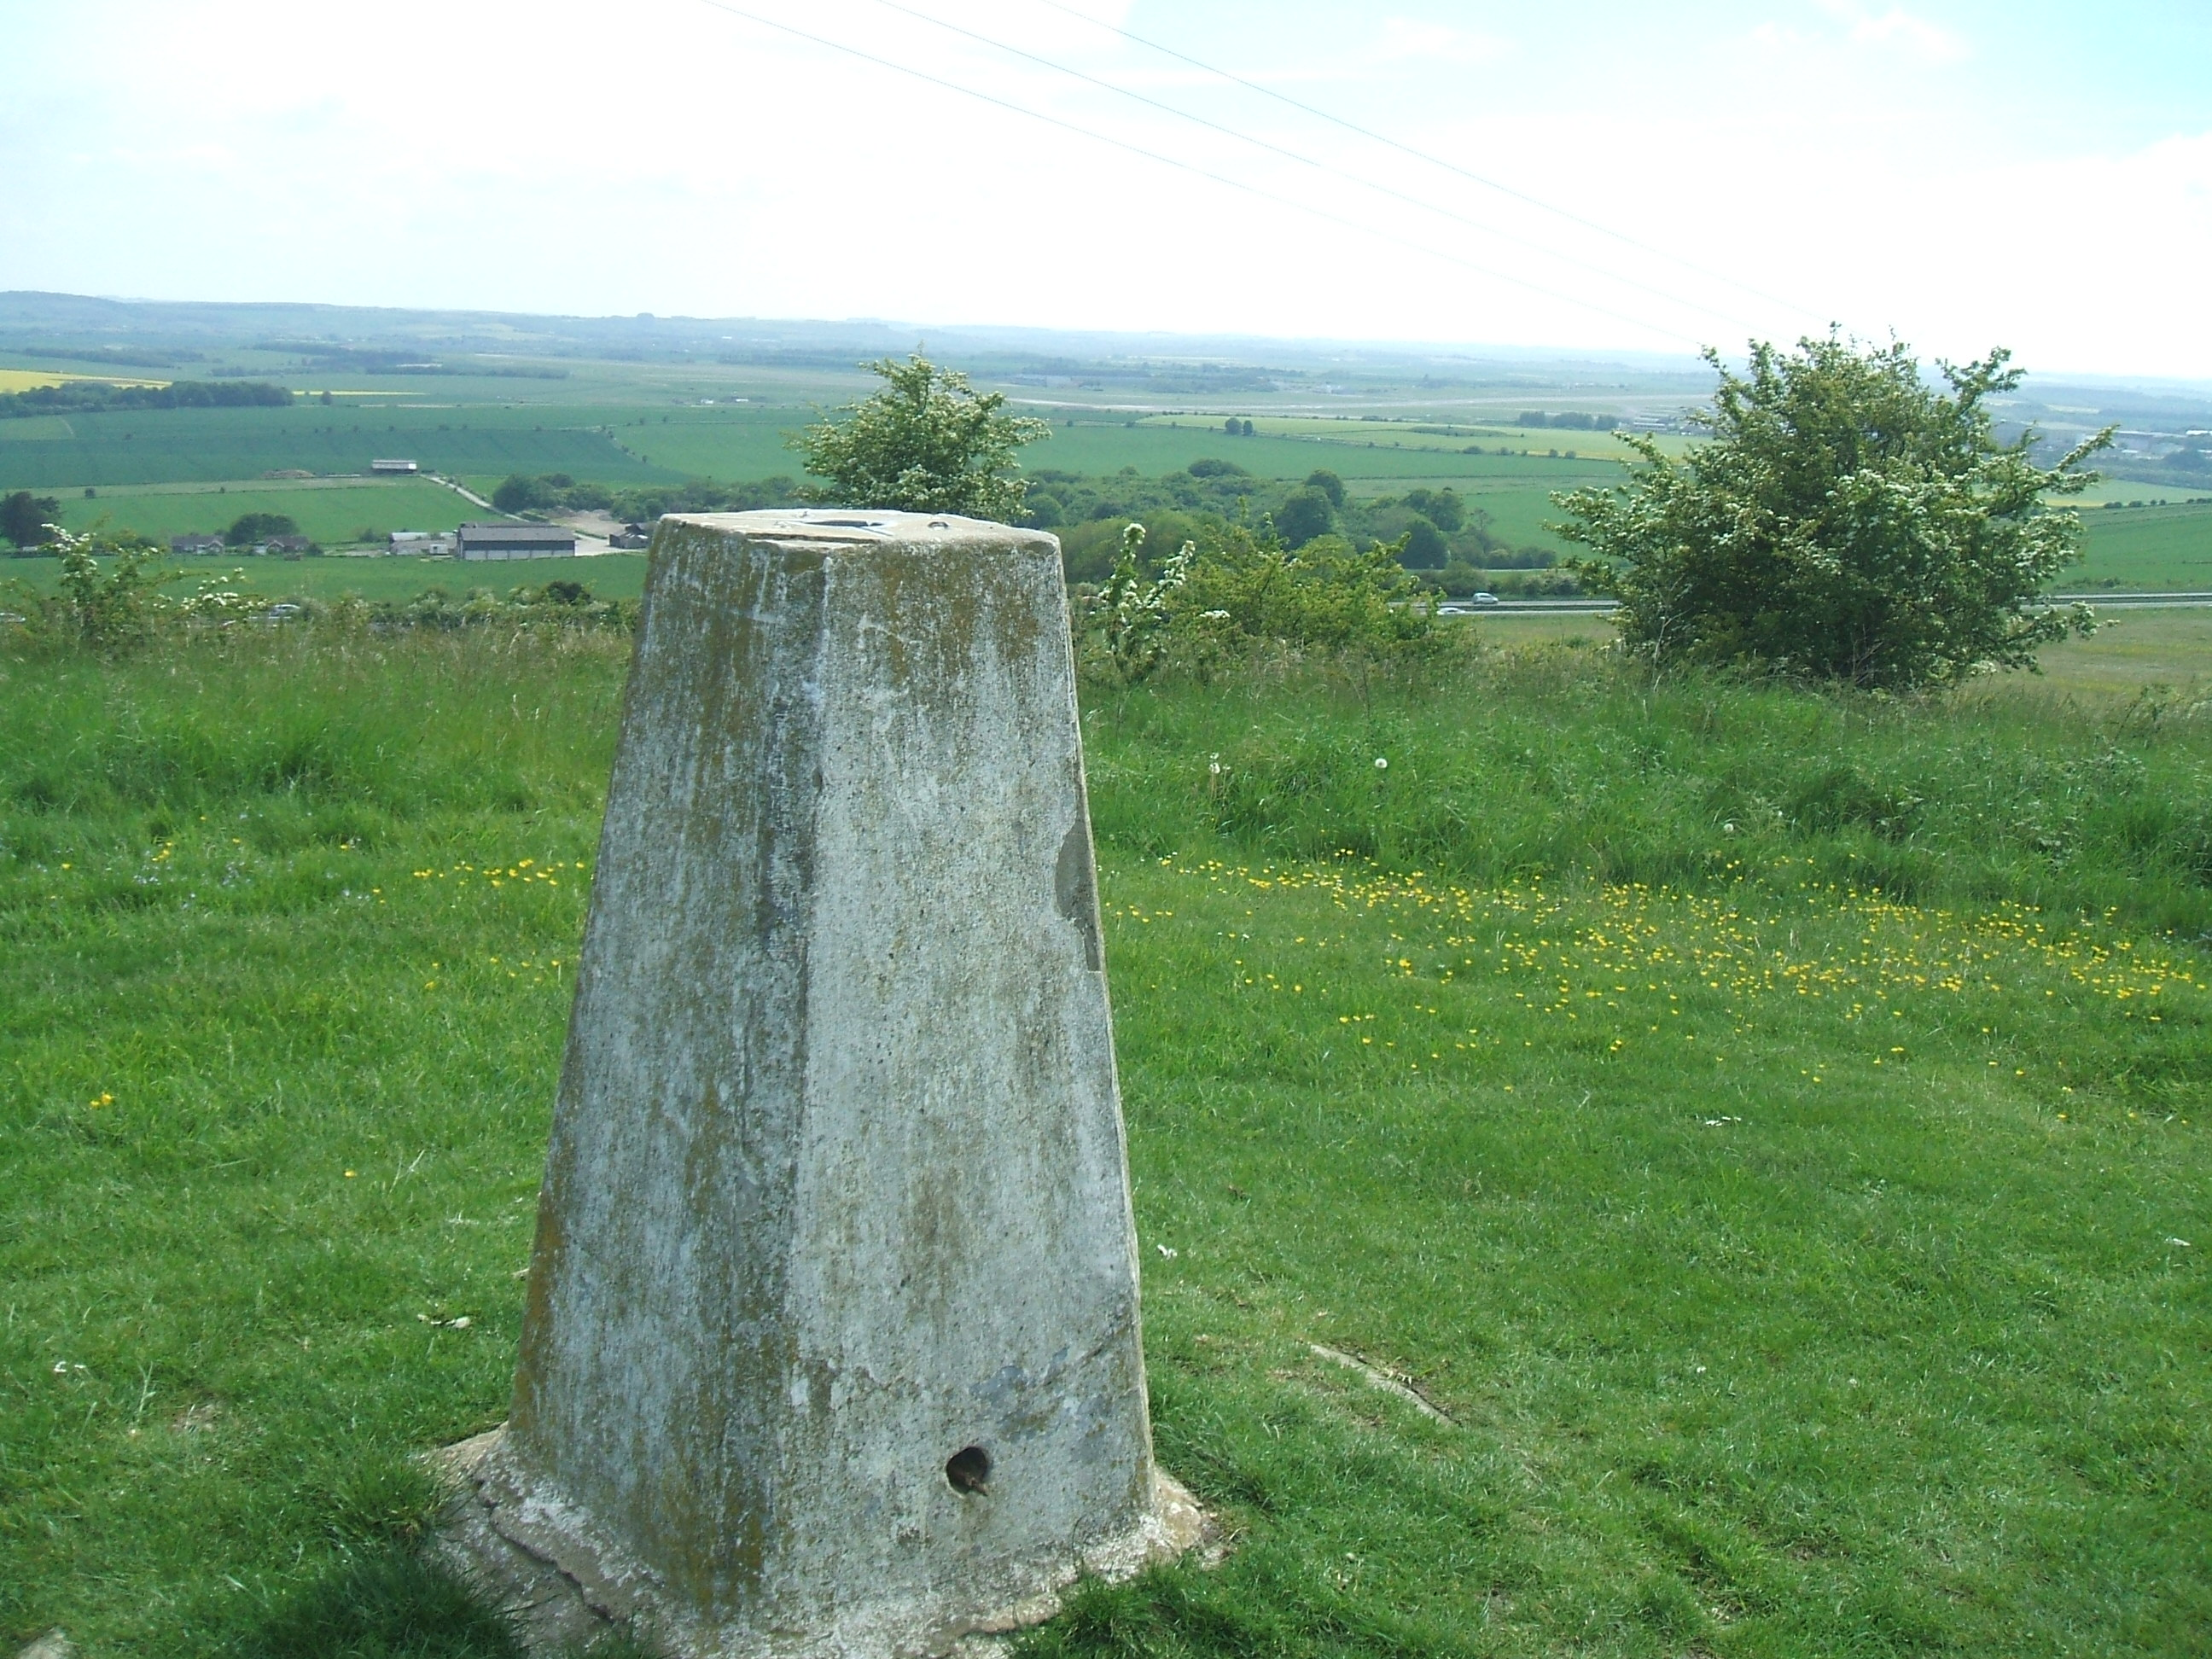 Northern trigpoint looking south